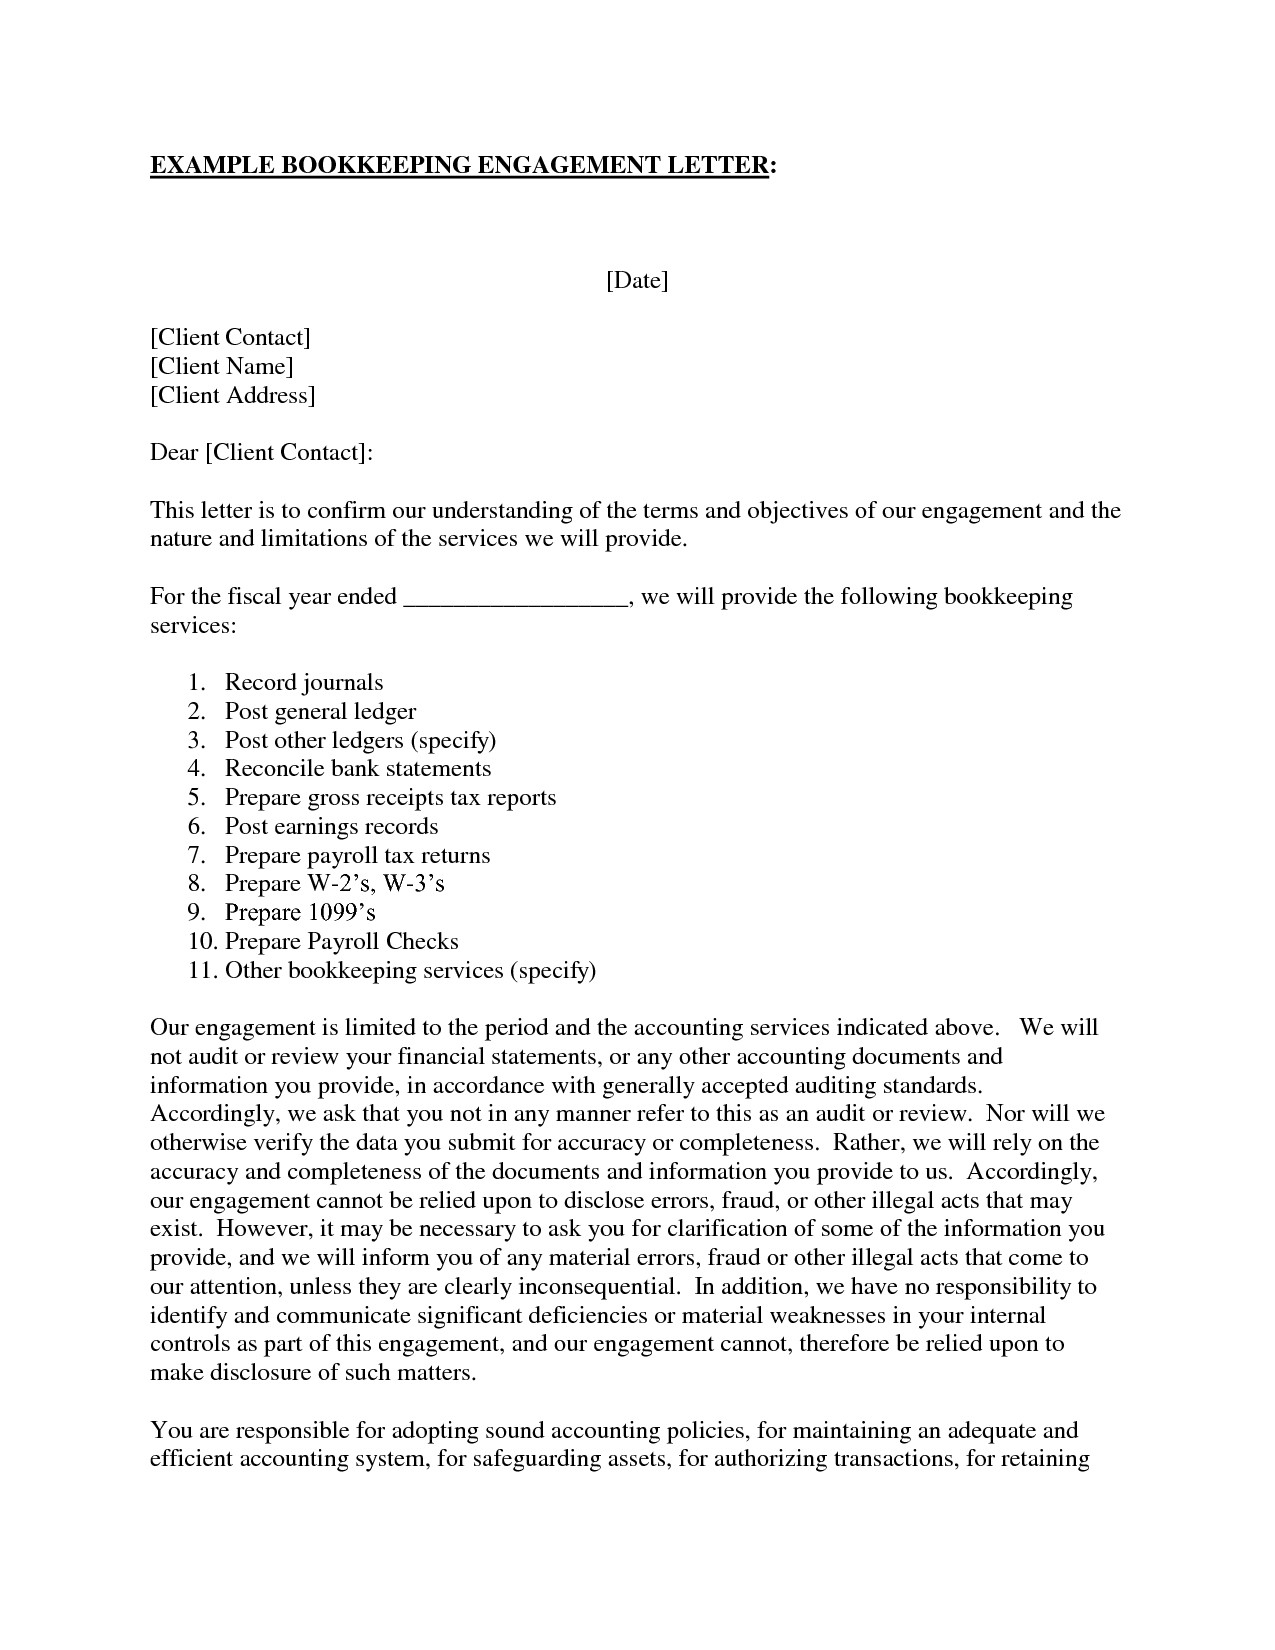 Letter Of Engagement Bookkeeping Template Australia New Sample And Bookkeeping Engagement Letter Example